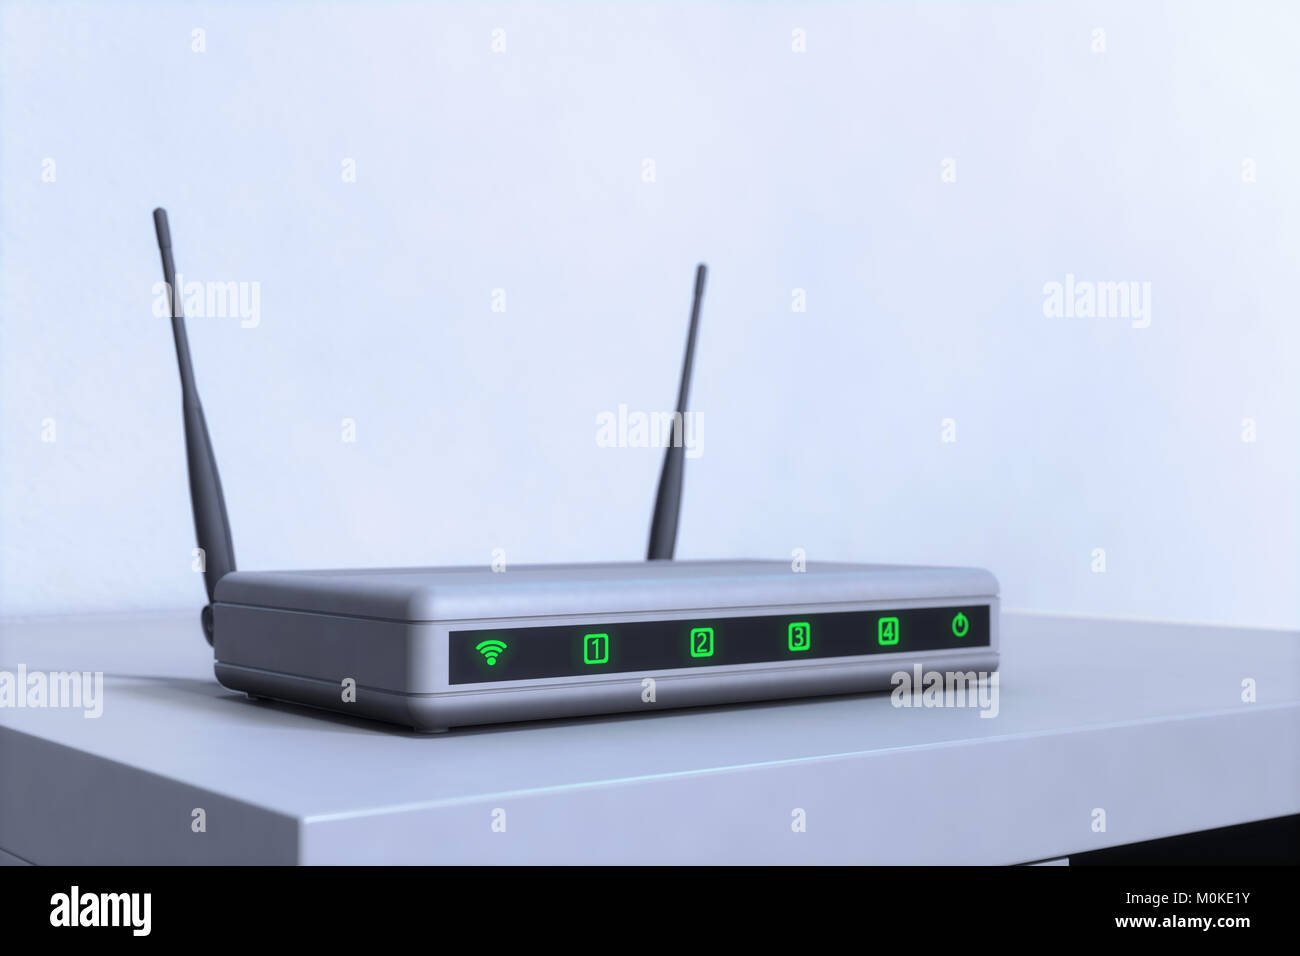 A W-LAN Router - Stock Image